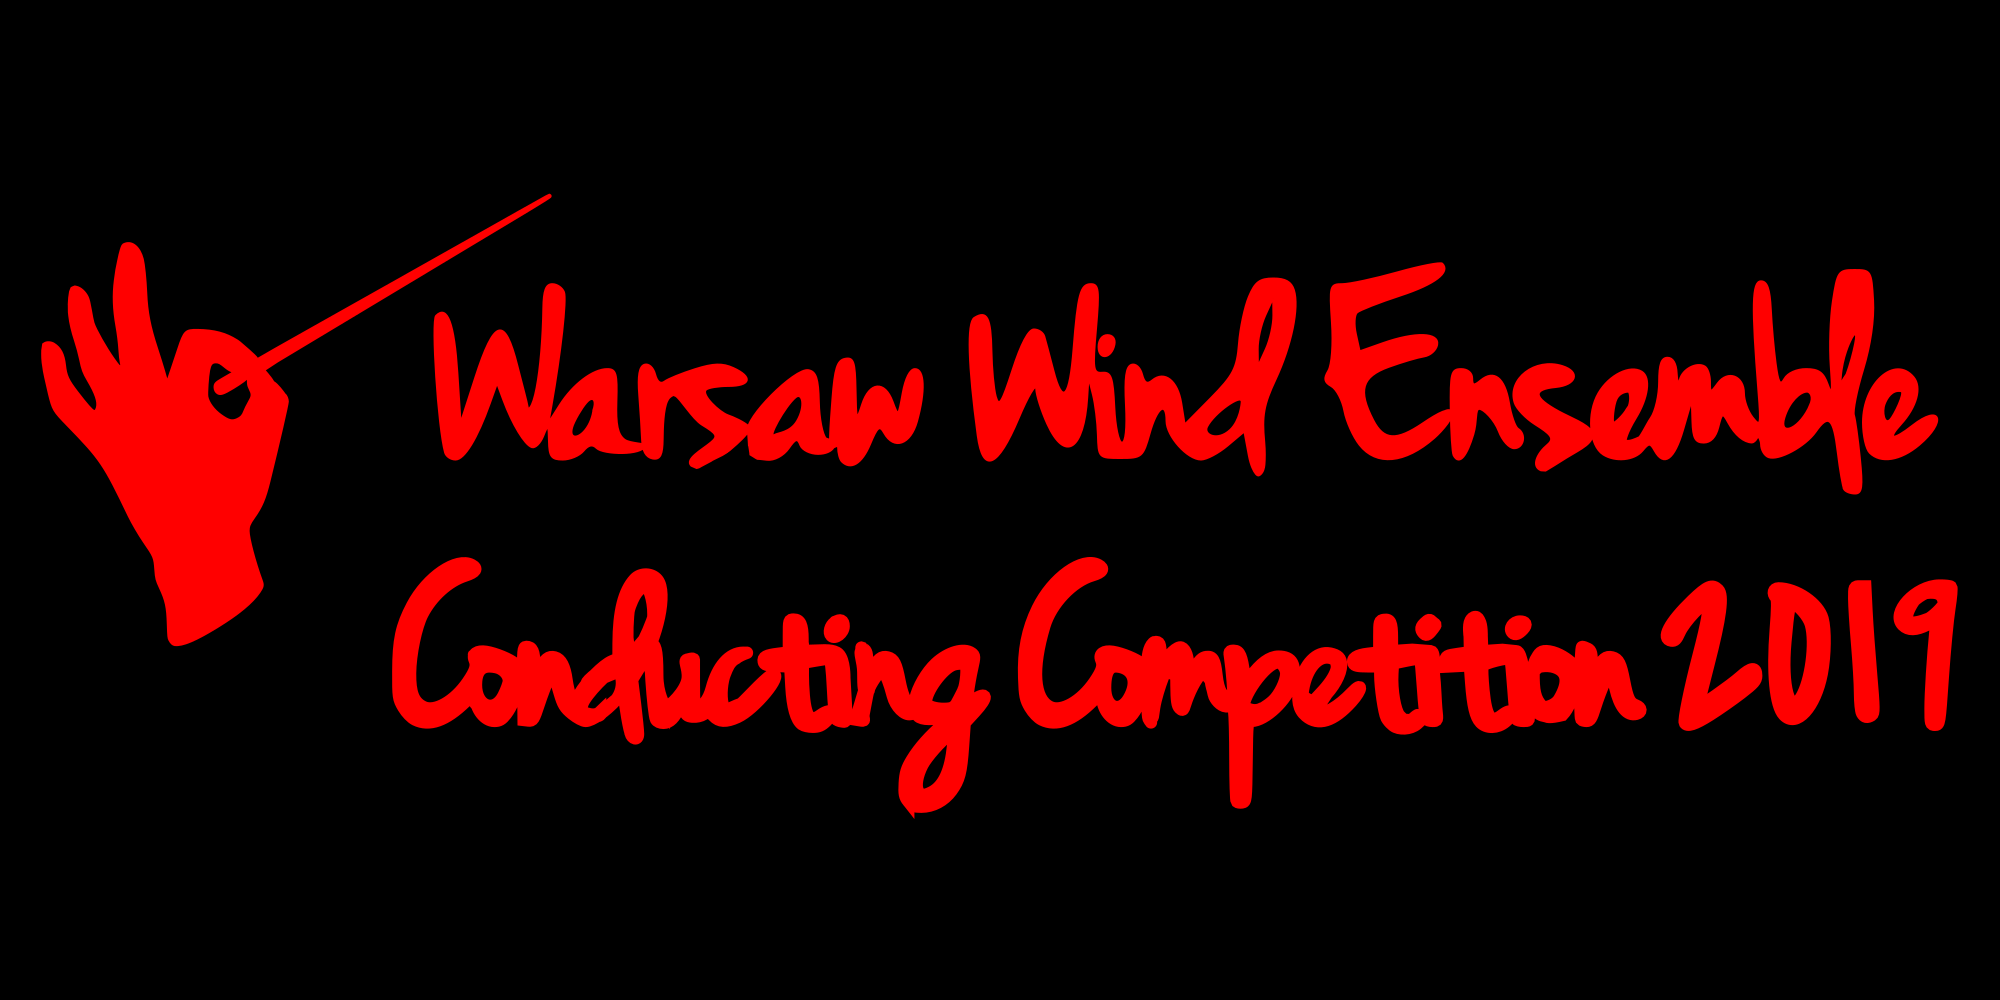 Warsaw Wind Ensemble Conducting Competition 2019